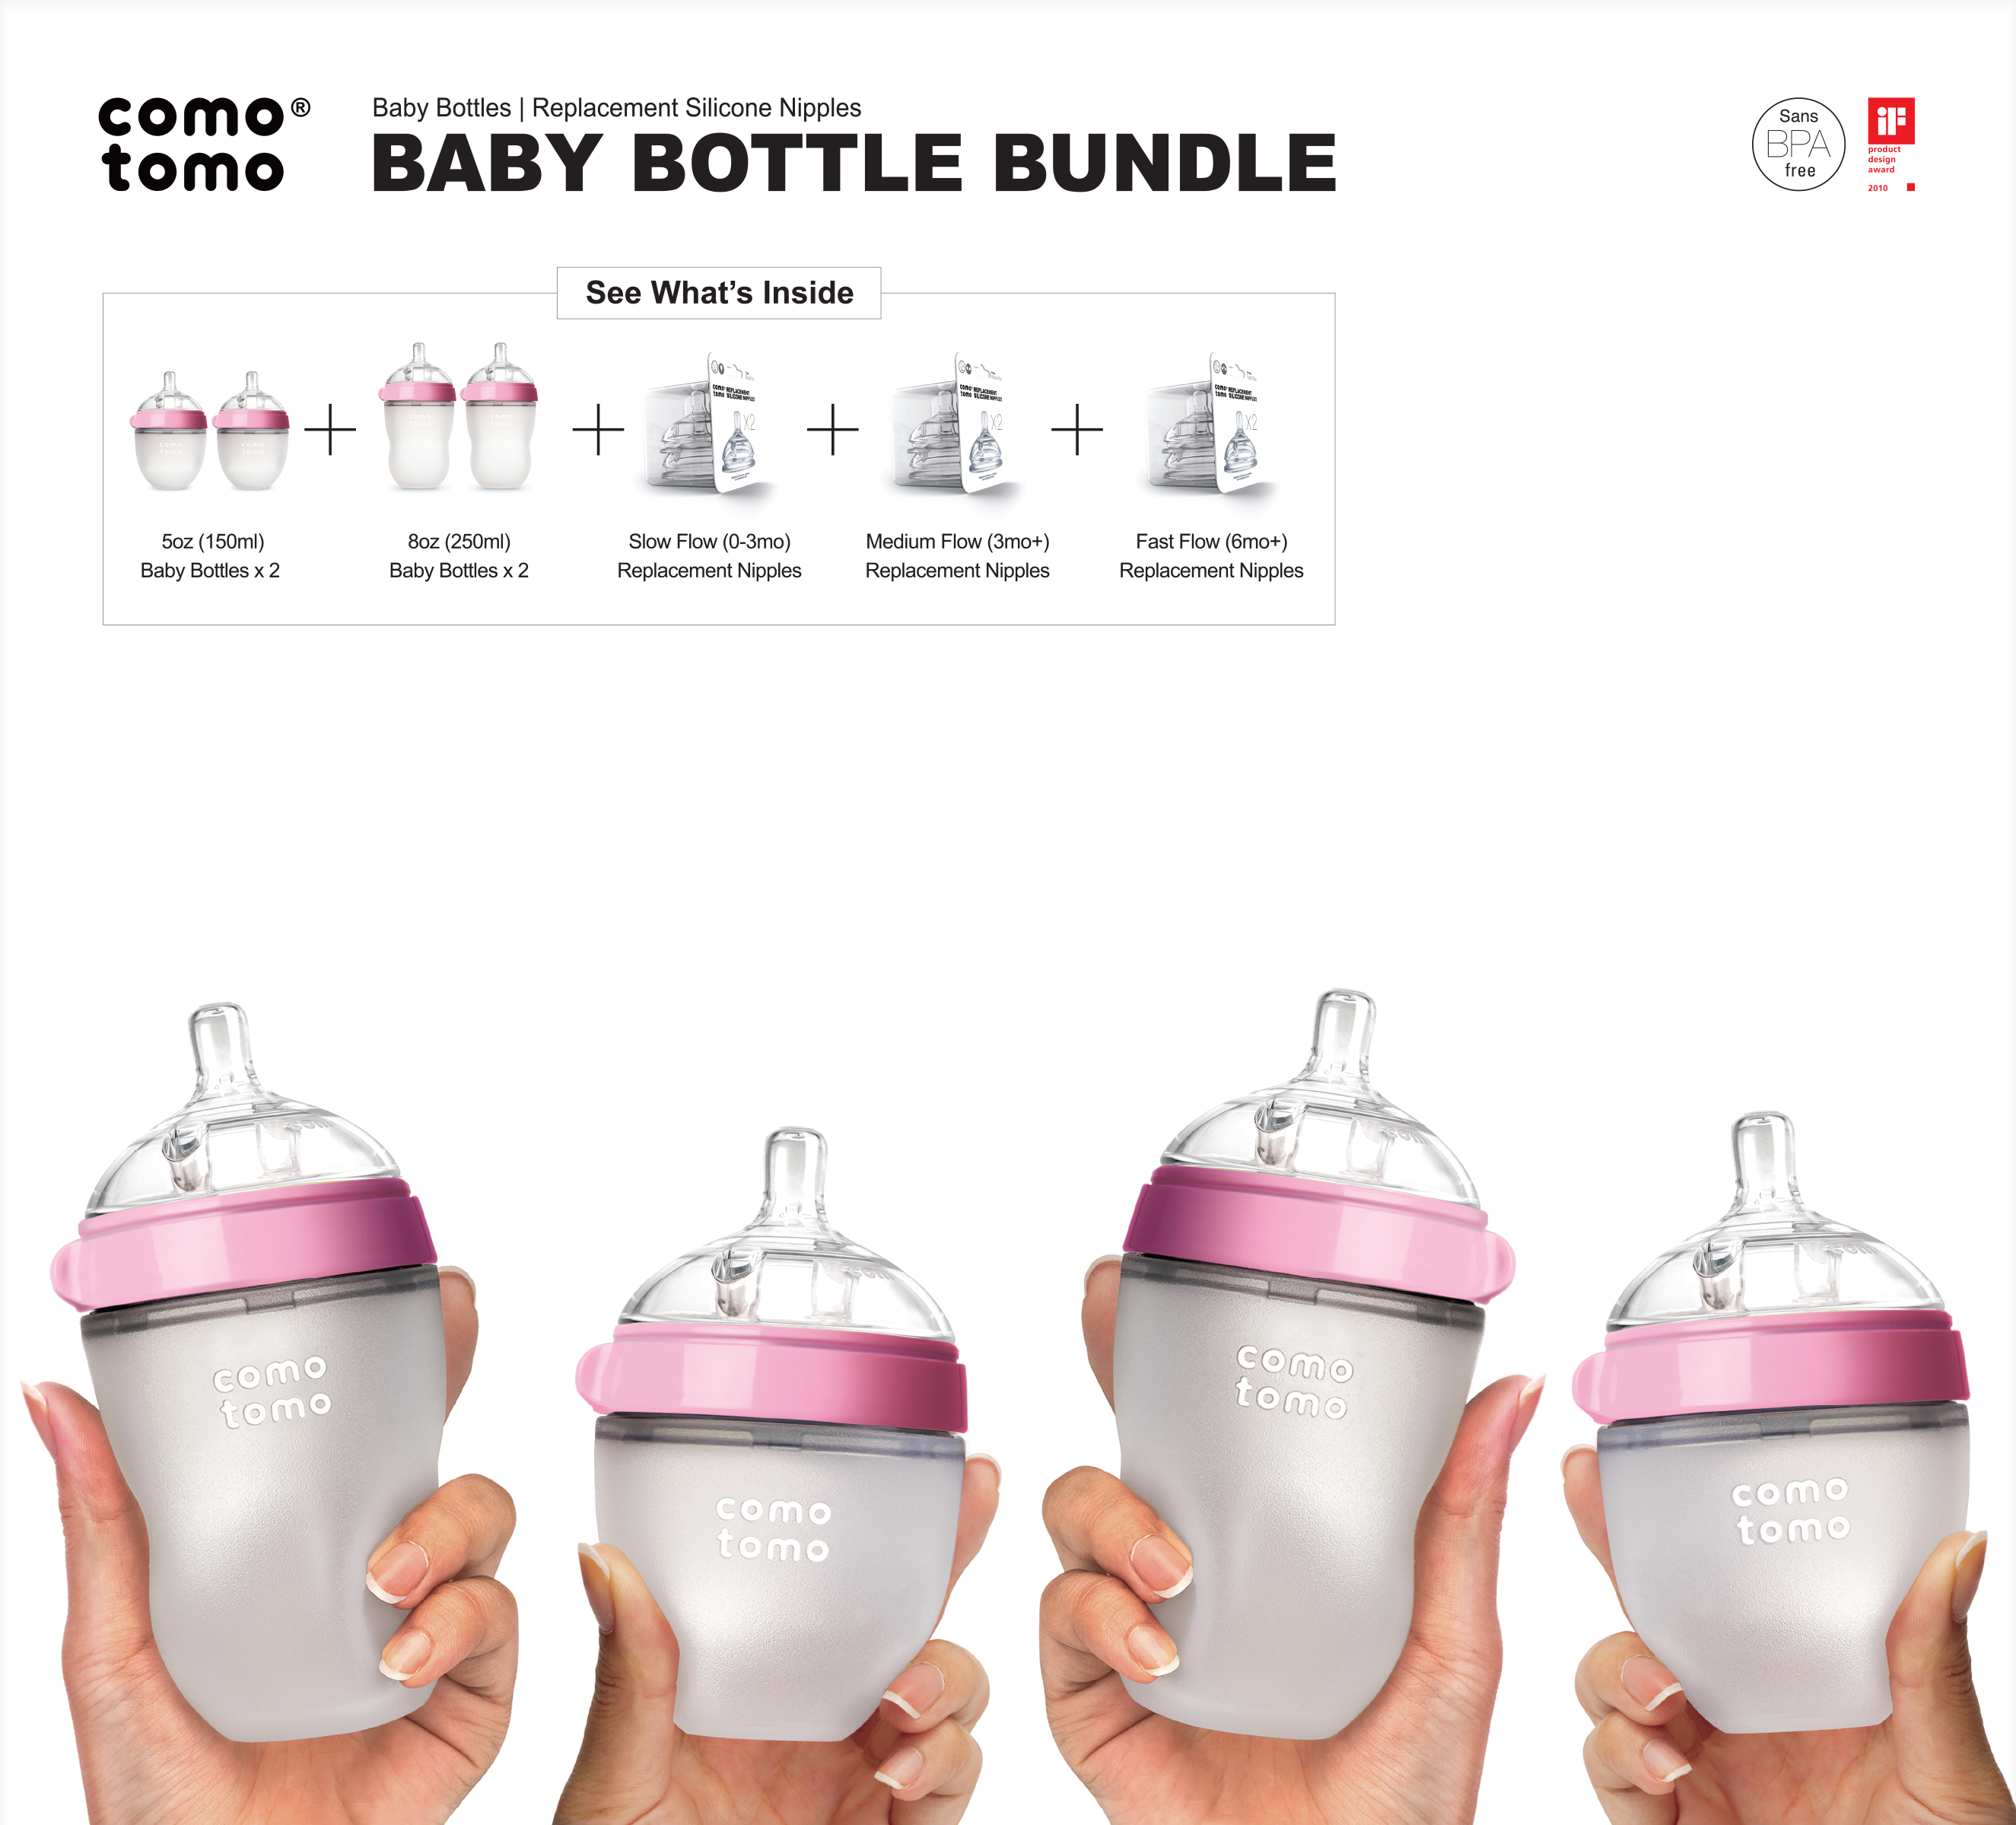 Comotomo Baby Bottle Bundle 7 Piece Gift Set The Perfect Gift For Expecting New Parents Or Parents Who Al Baby Bottles Baby Bottle Storage Best Baby Bottles